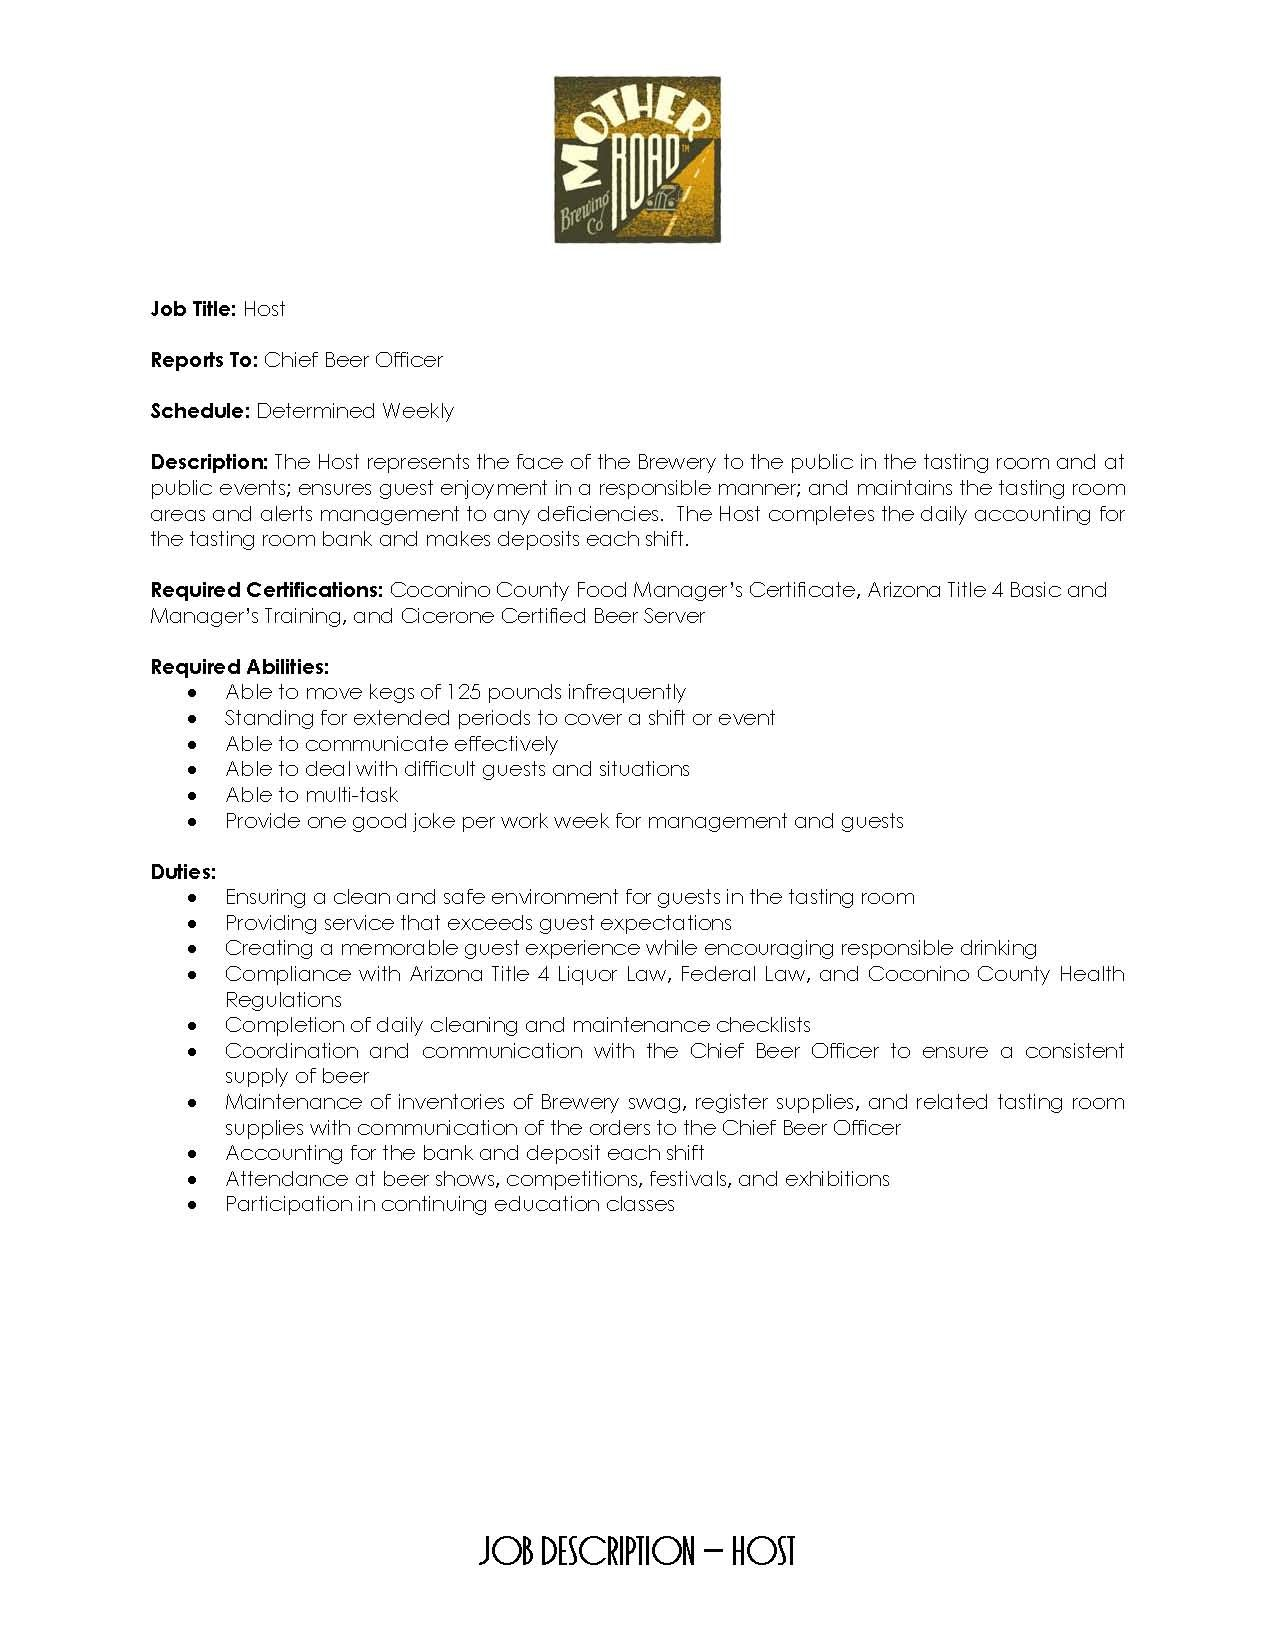 Best Web Design Cover Letter The Merced City School District Is